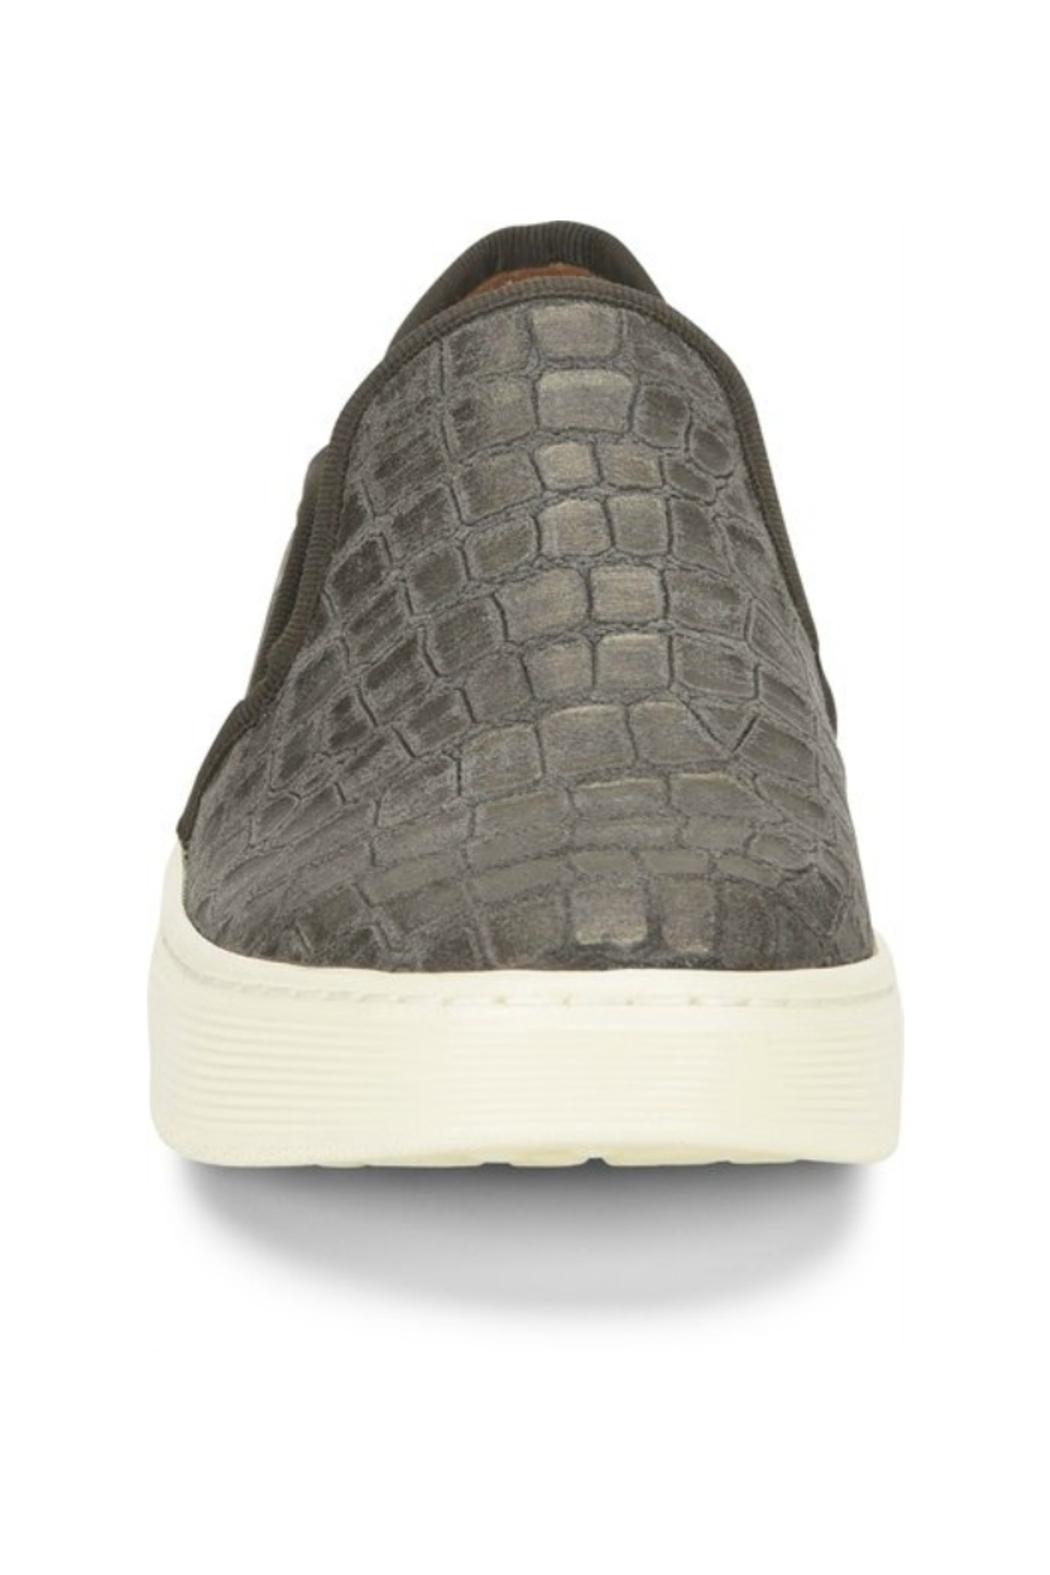 Sofft Somers Slip on in Grey Nubuck - Front Full Image